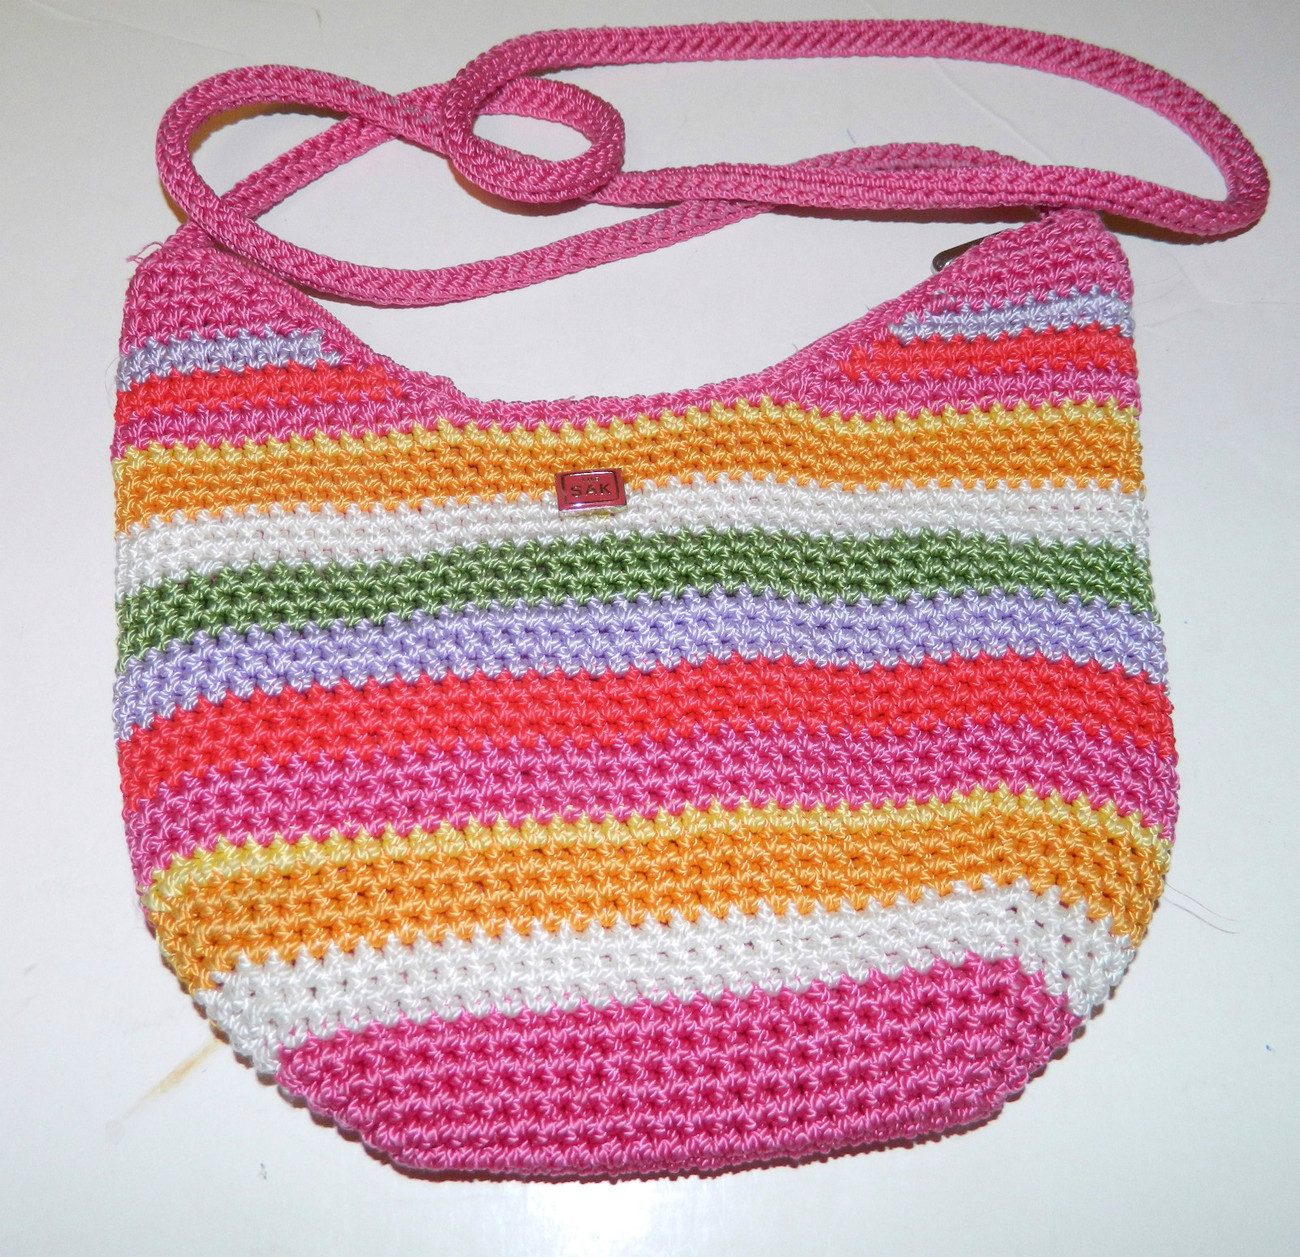 Primary image for The Sak Small Hobo Crossbody Mulit Colored Strip Crochet Purse / Handbag